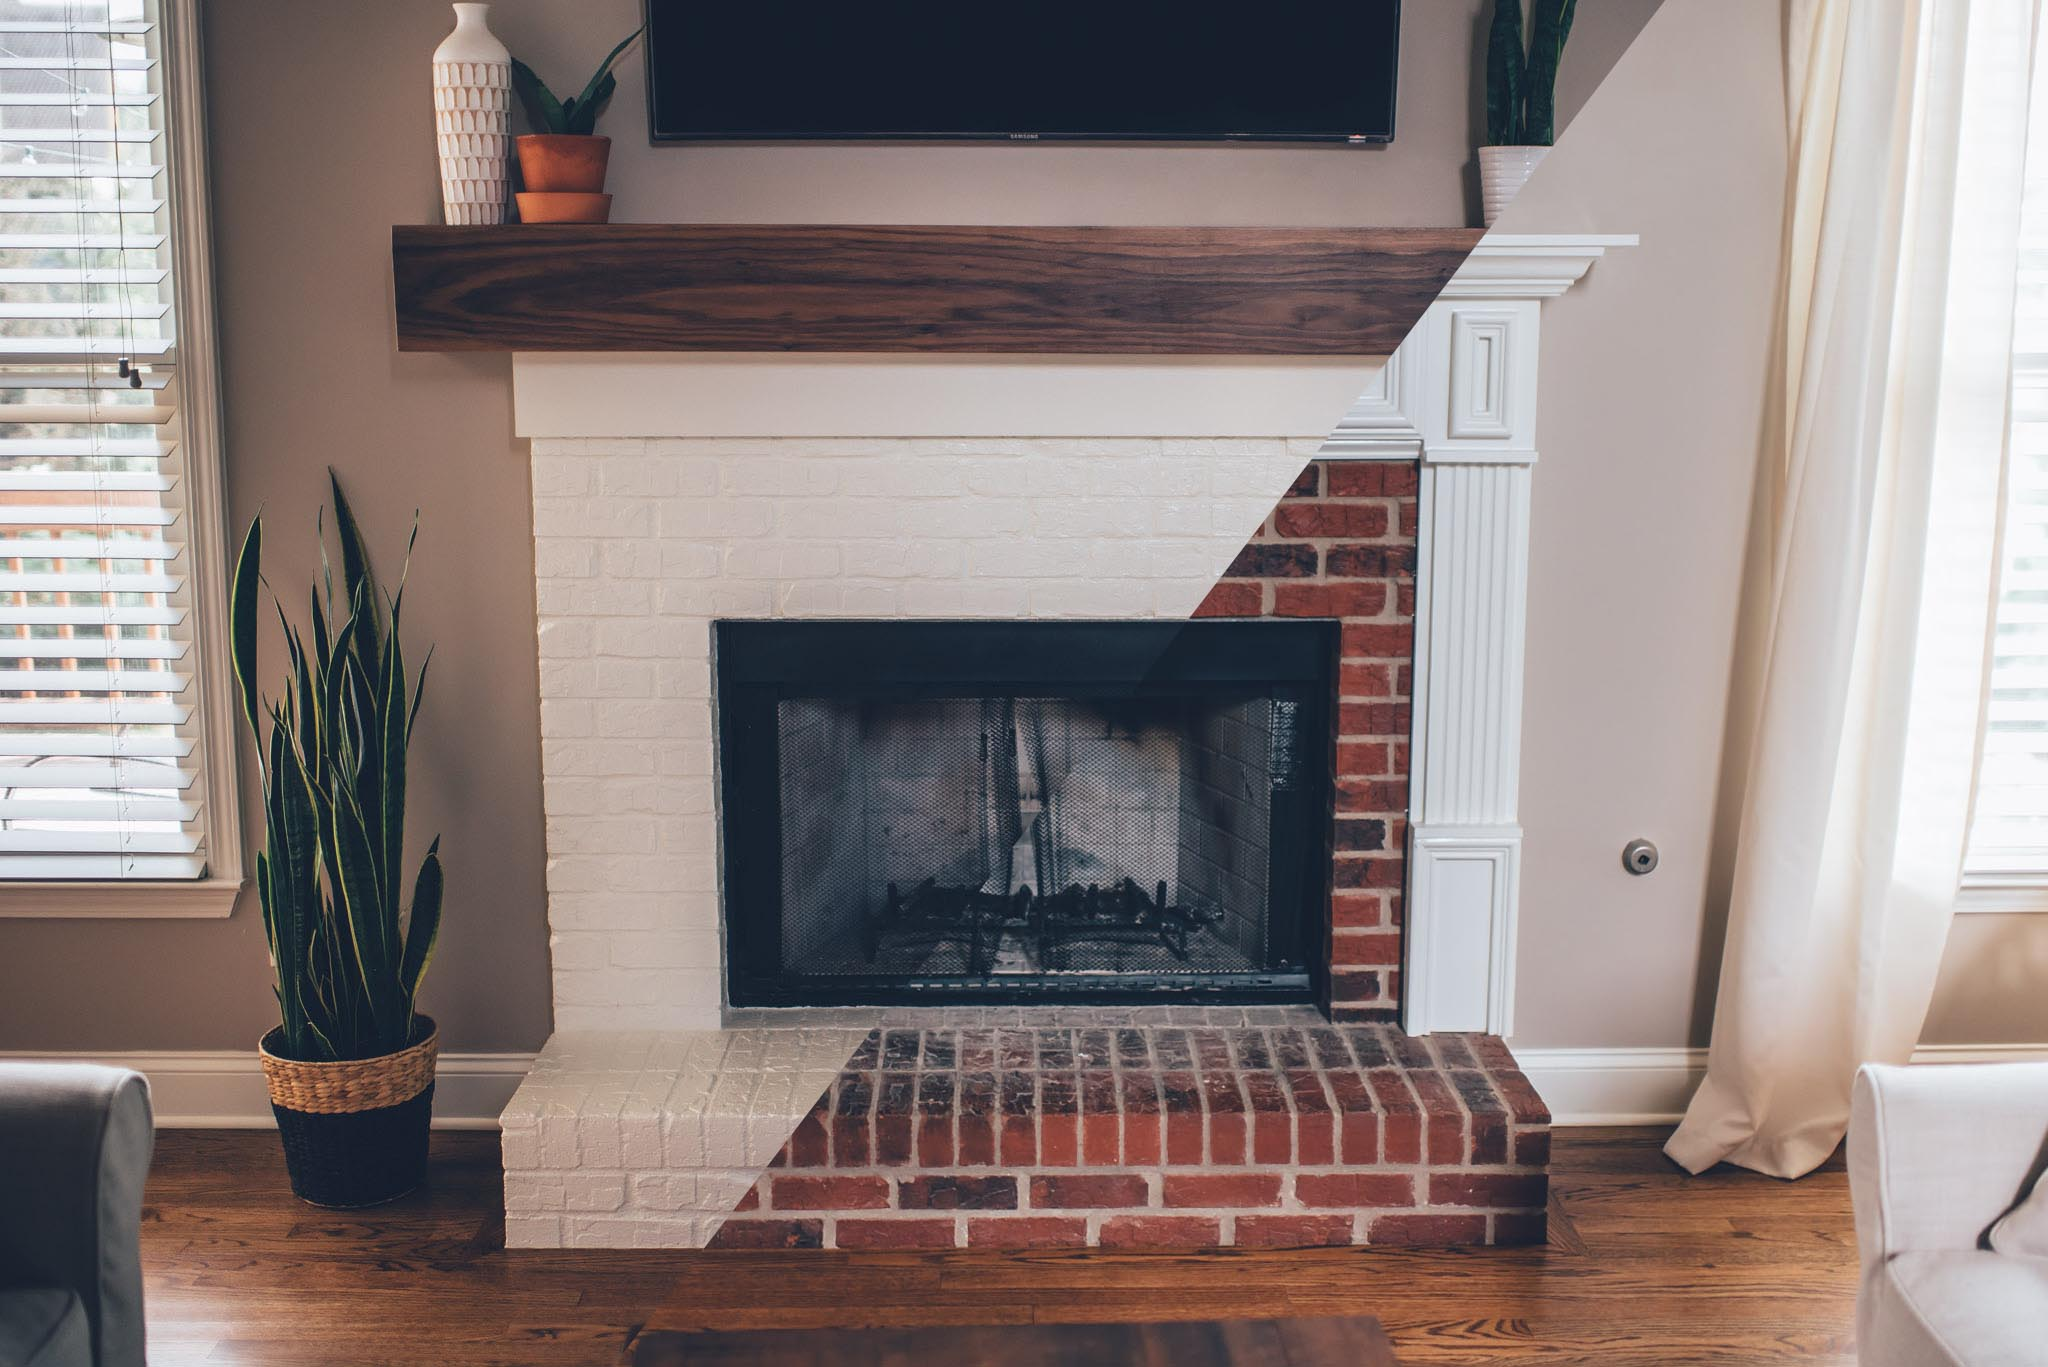 Caulk Around The Lower Mantel Brick And Apply Appropriate Wall Paint To Fill Anything In